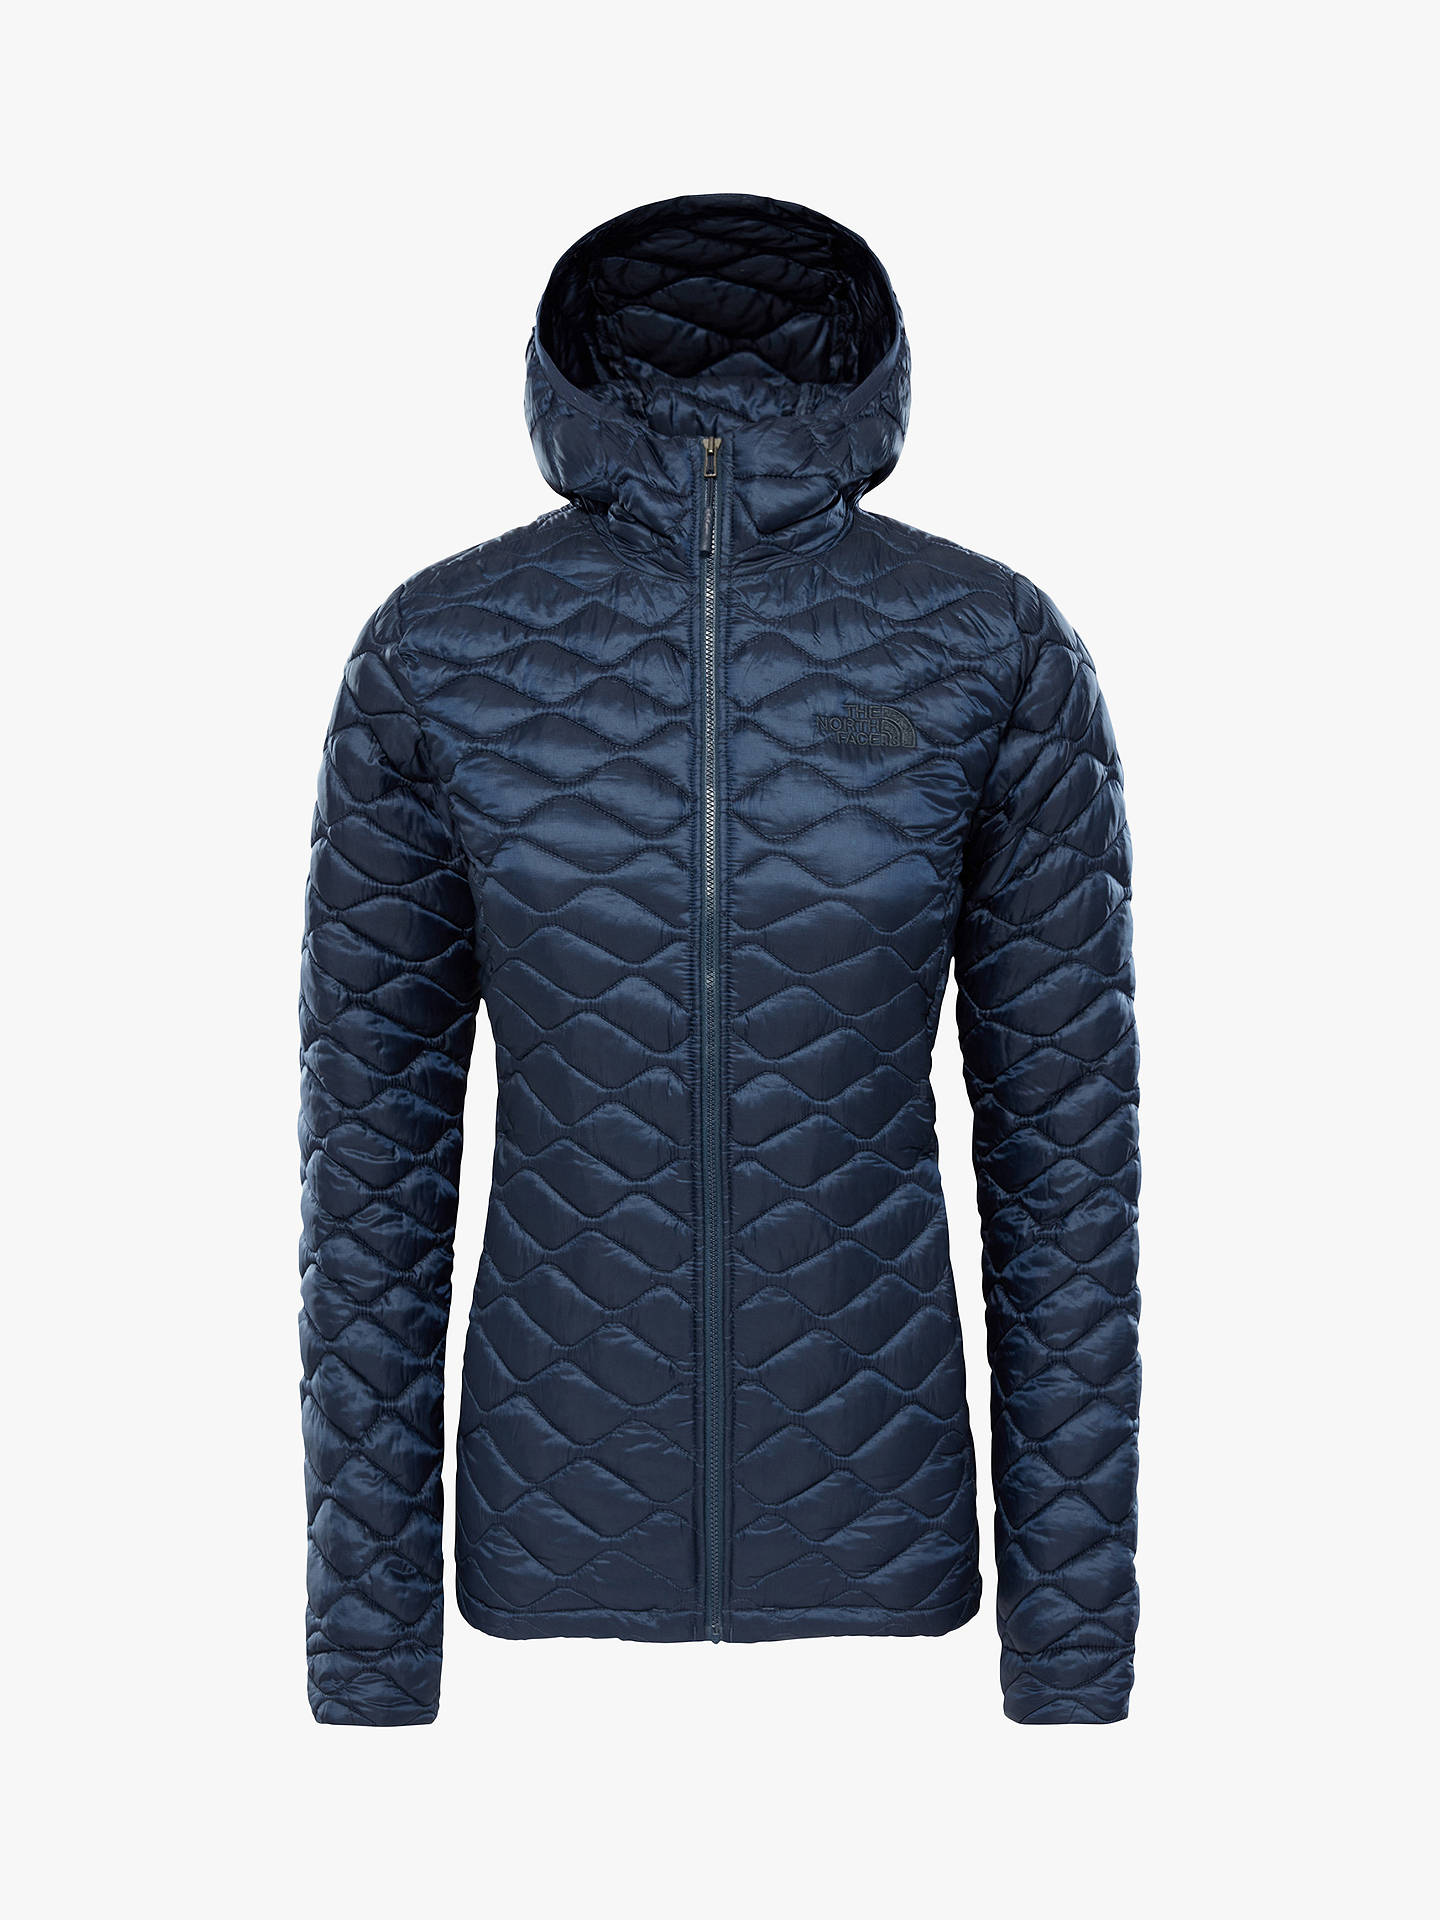 55cf609c679a Buy The North Face Thermoball Women s Hooded Jacket